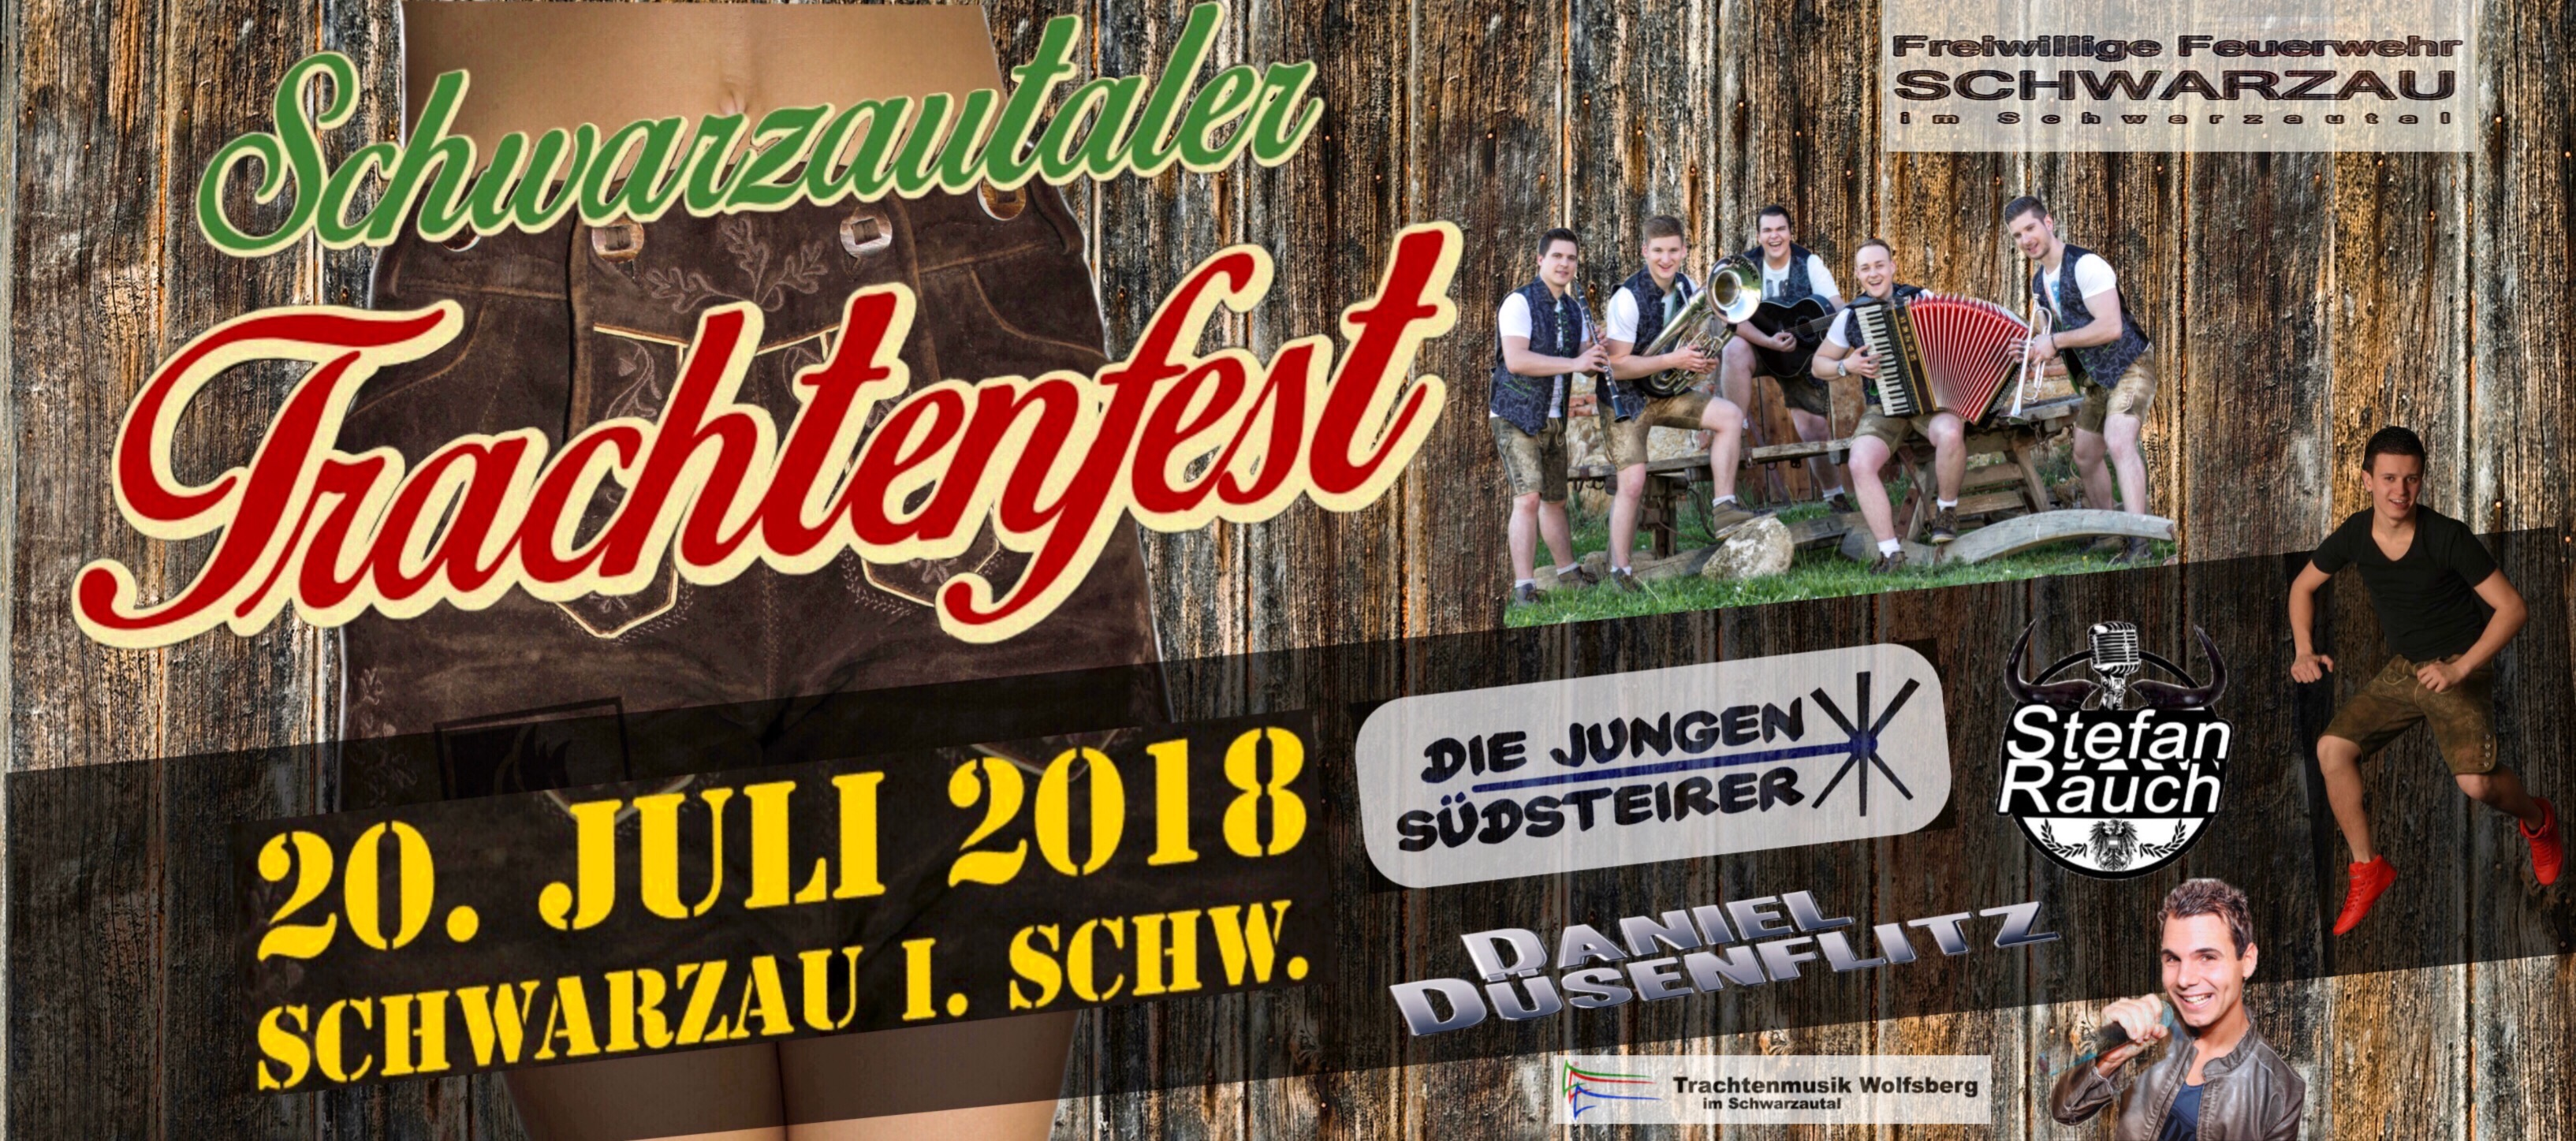 Trachtenfest/PARTY 2018